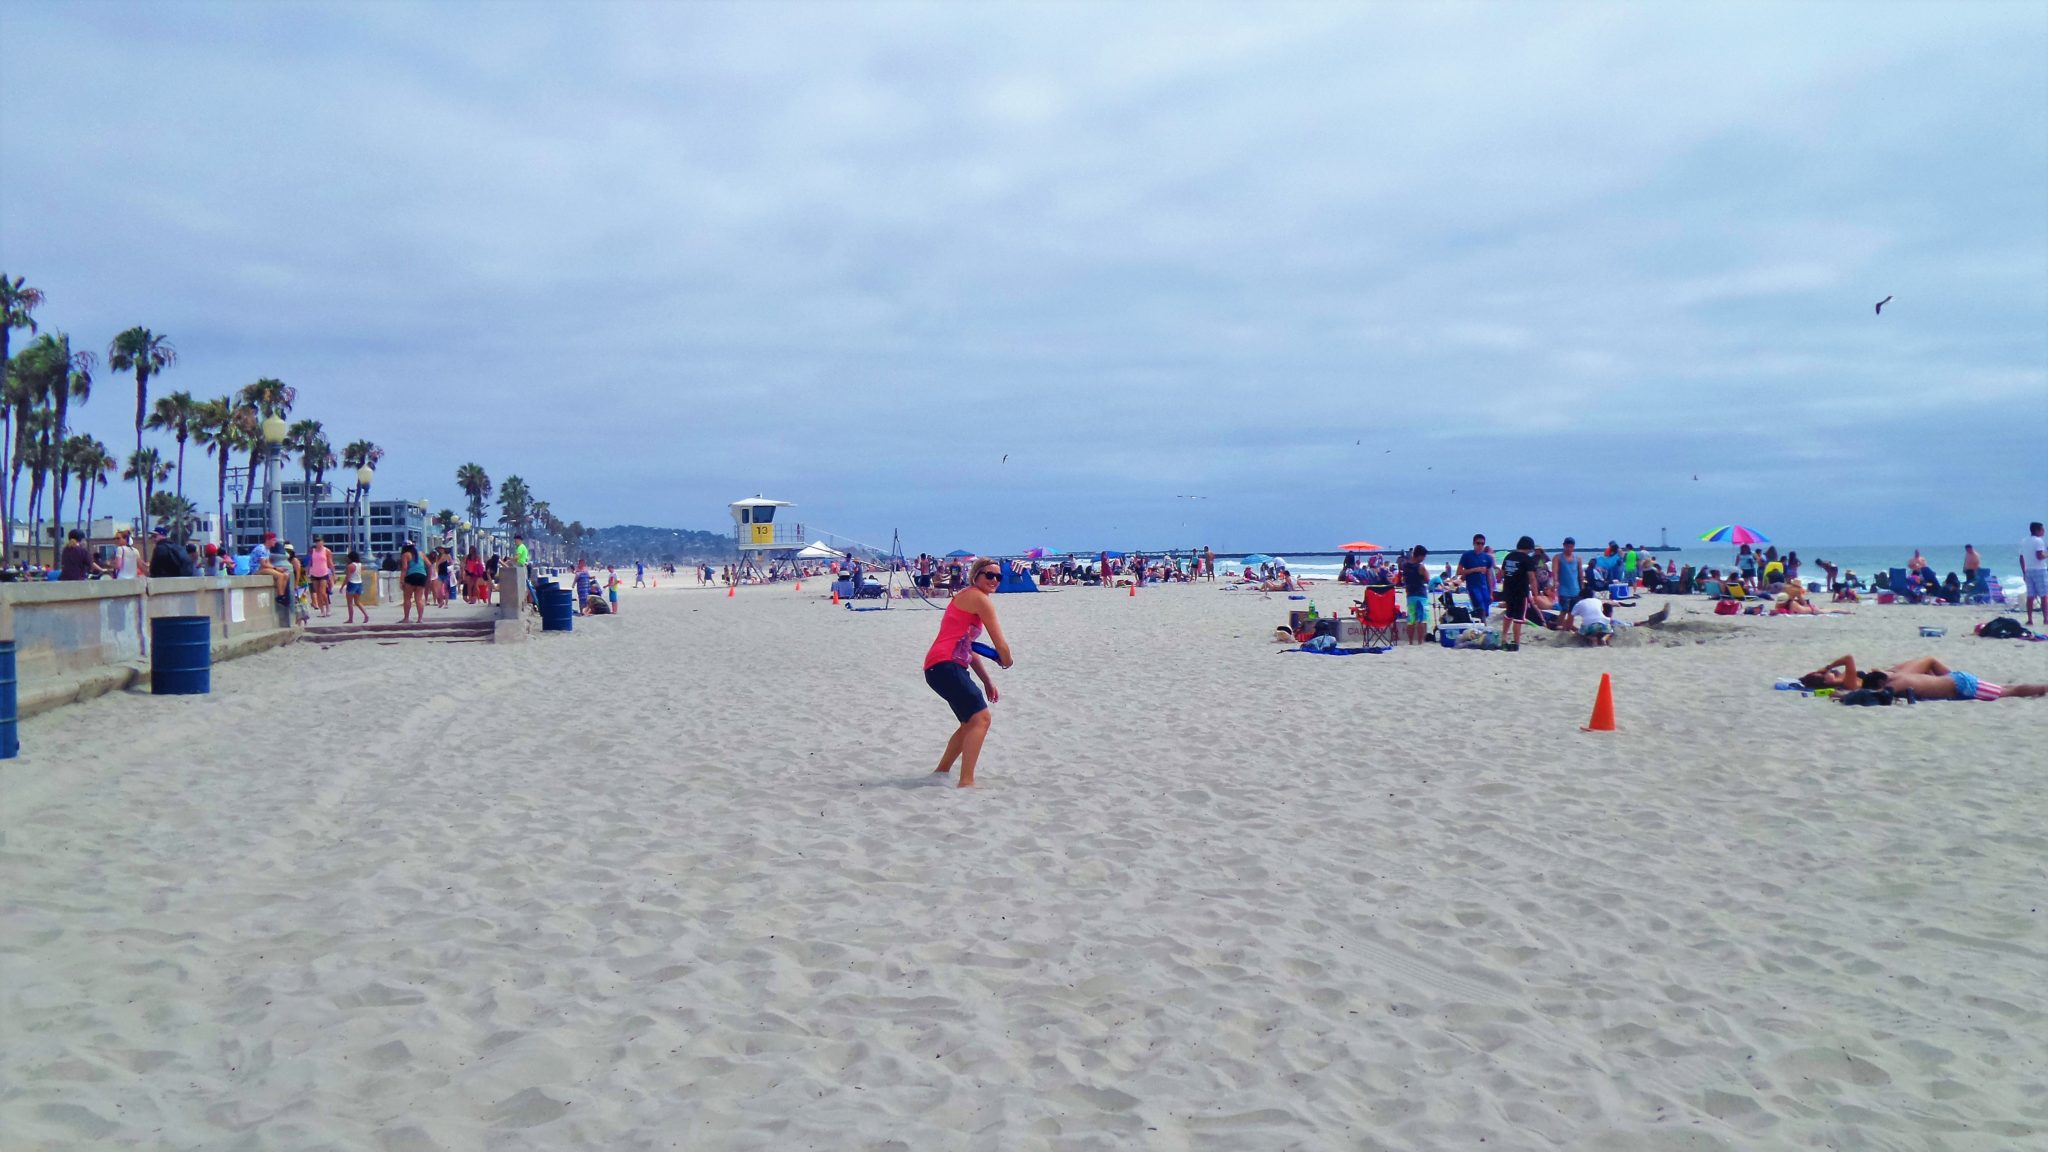 Frisbee throwing at Mission Beach, things to do in San Diego